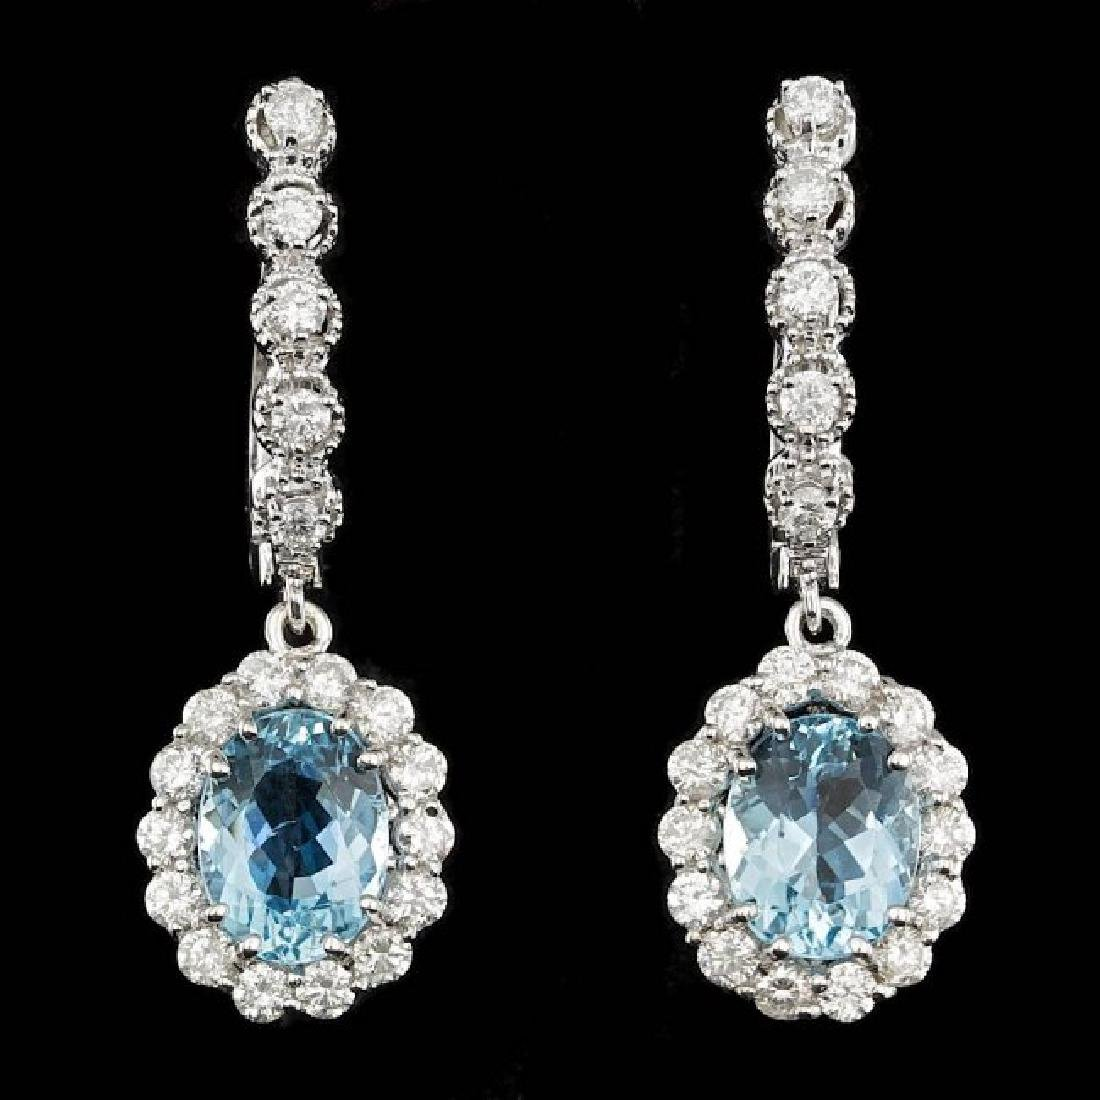 14k 3.00ct Aquamarine 1.35ct Diamond Earrings